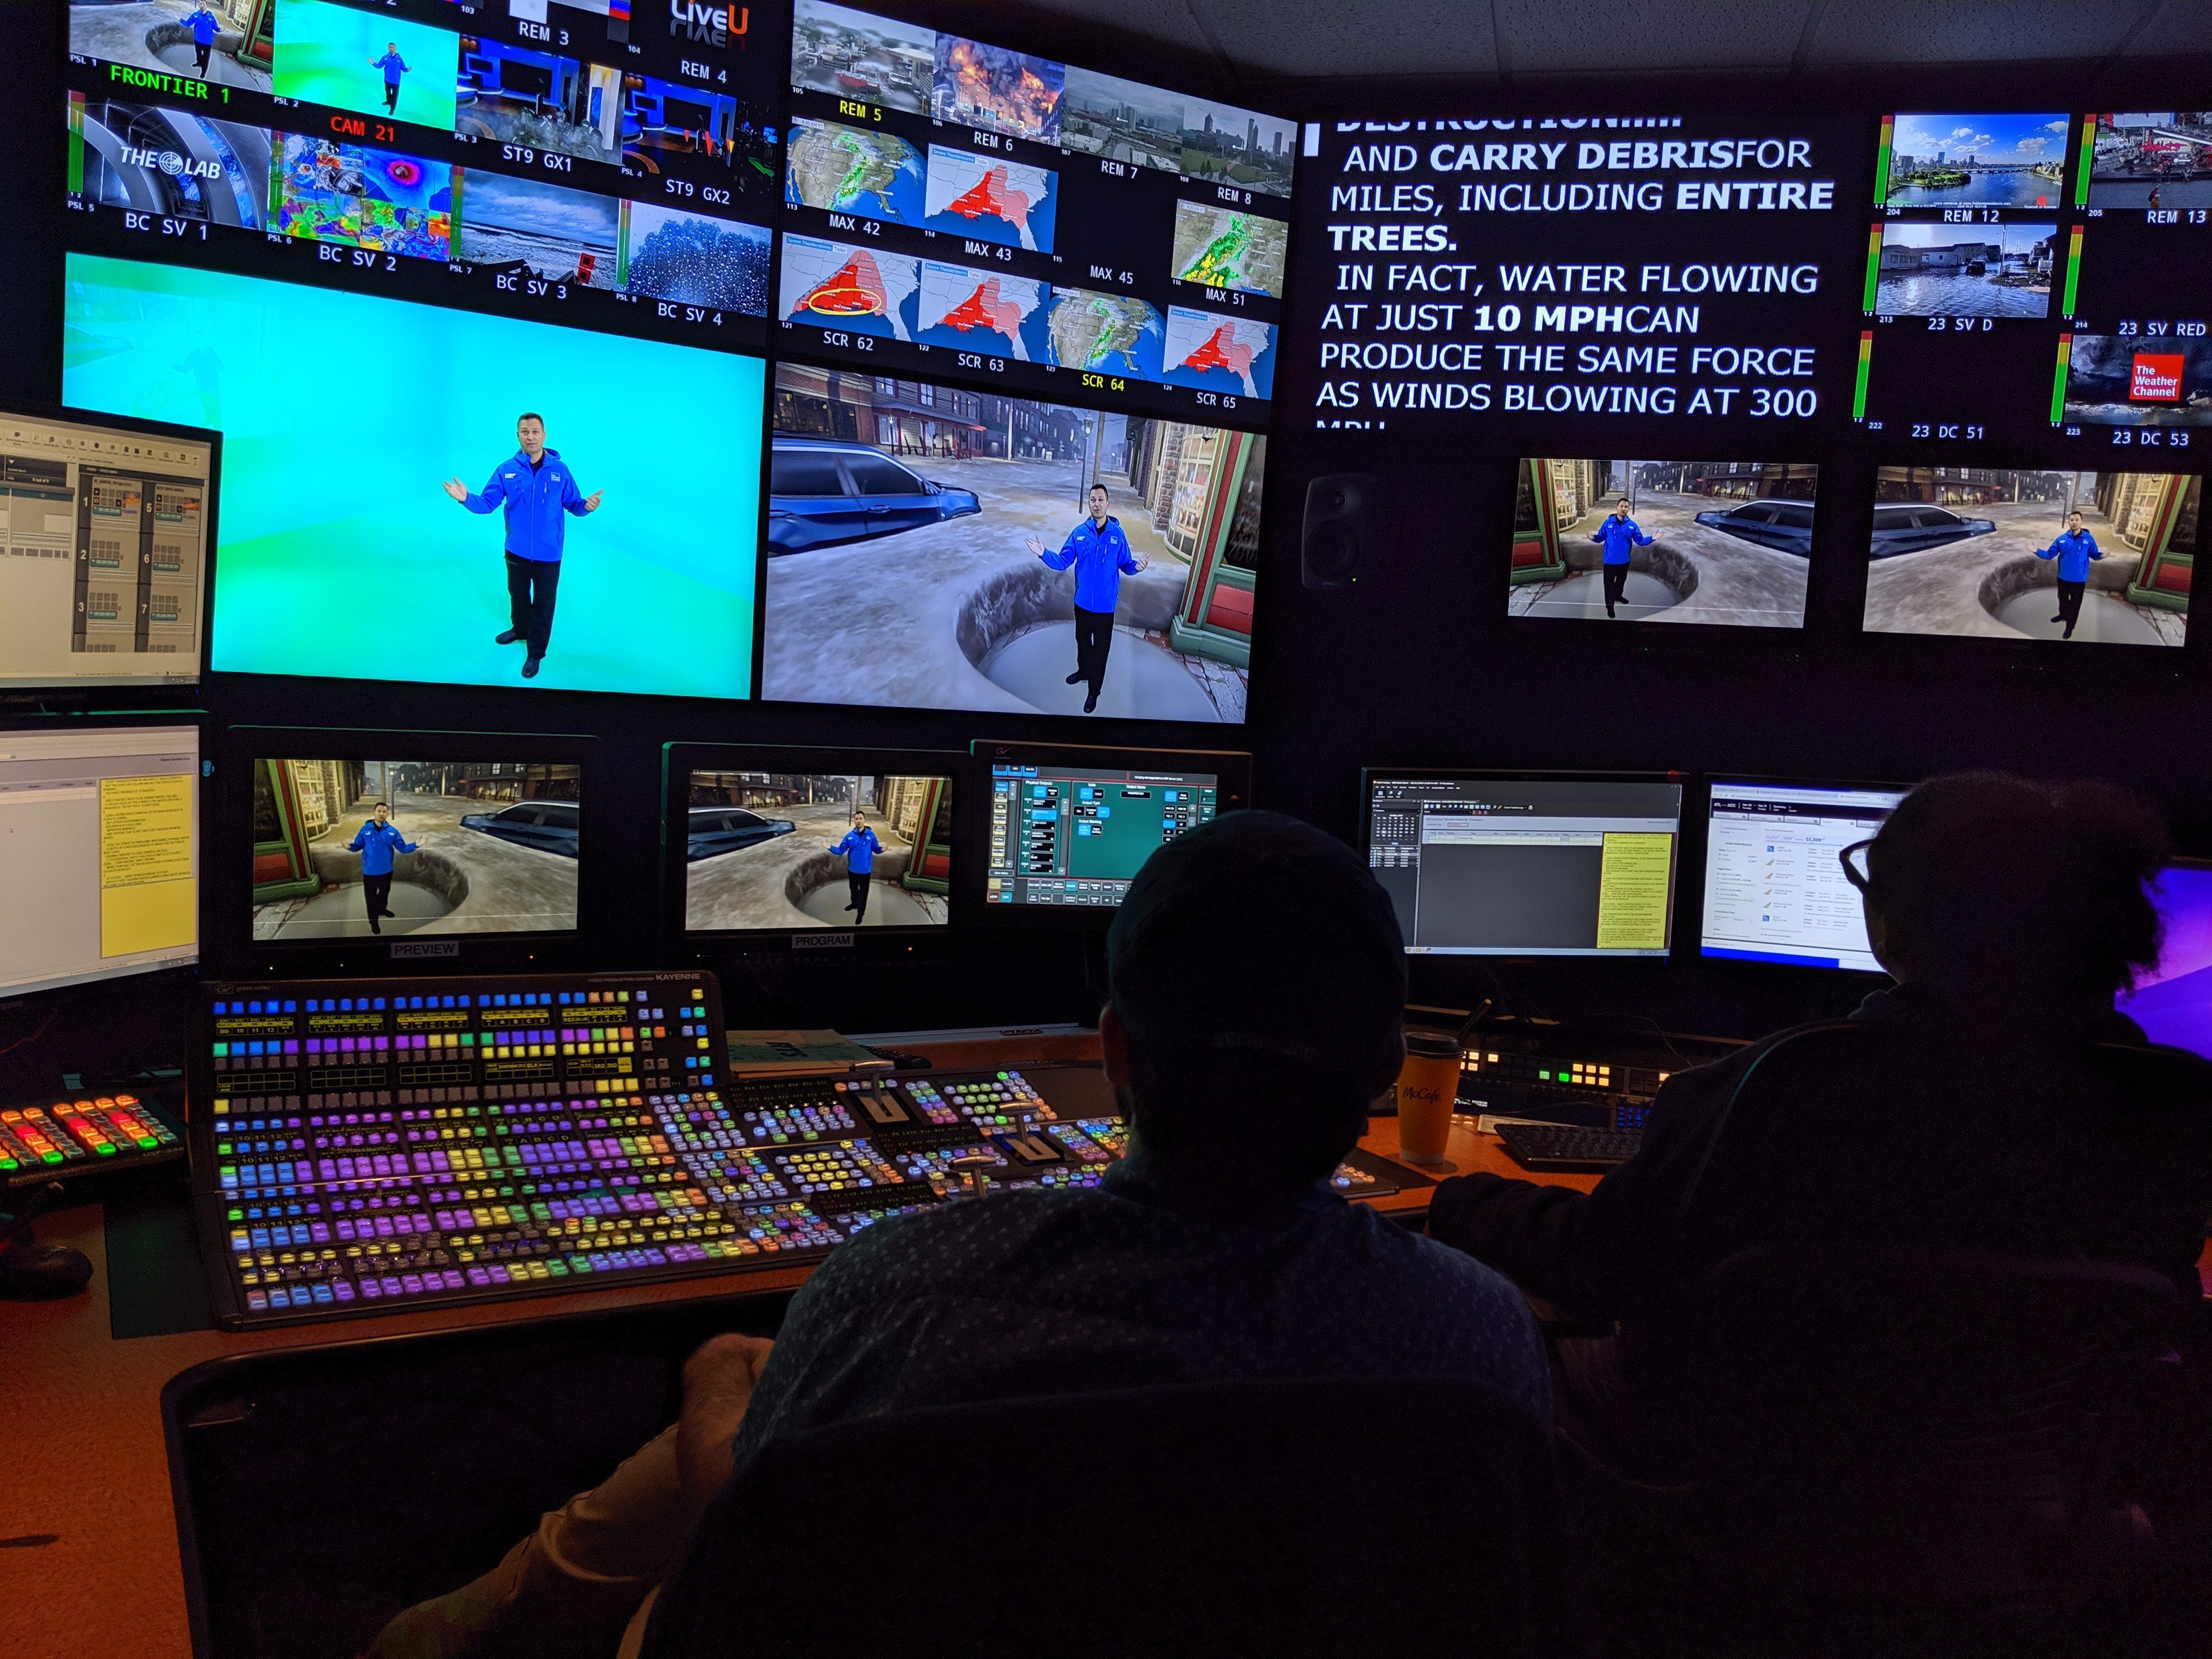 Weather Channel control room